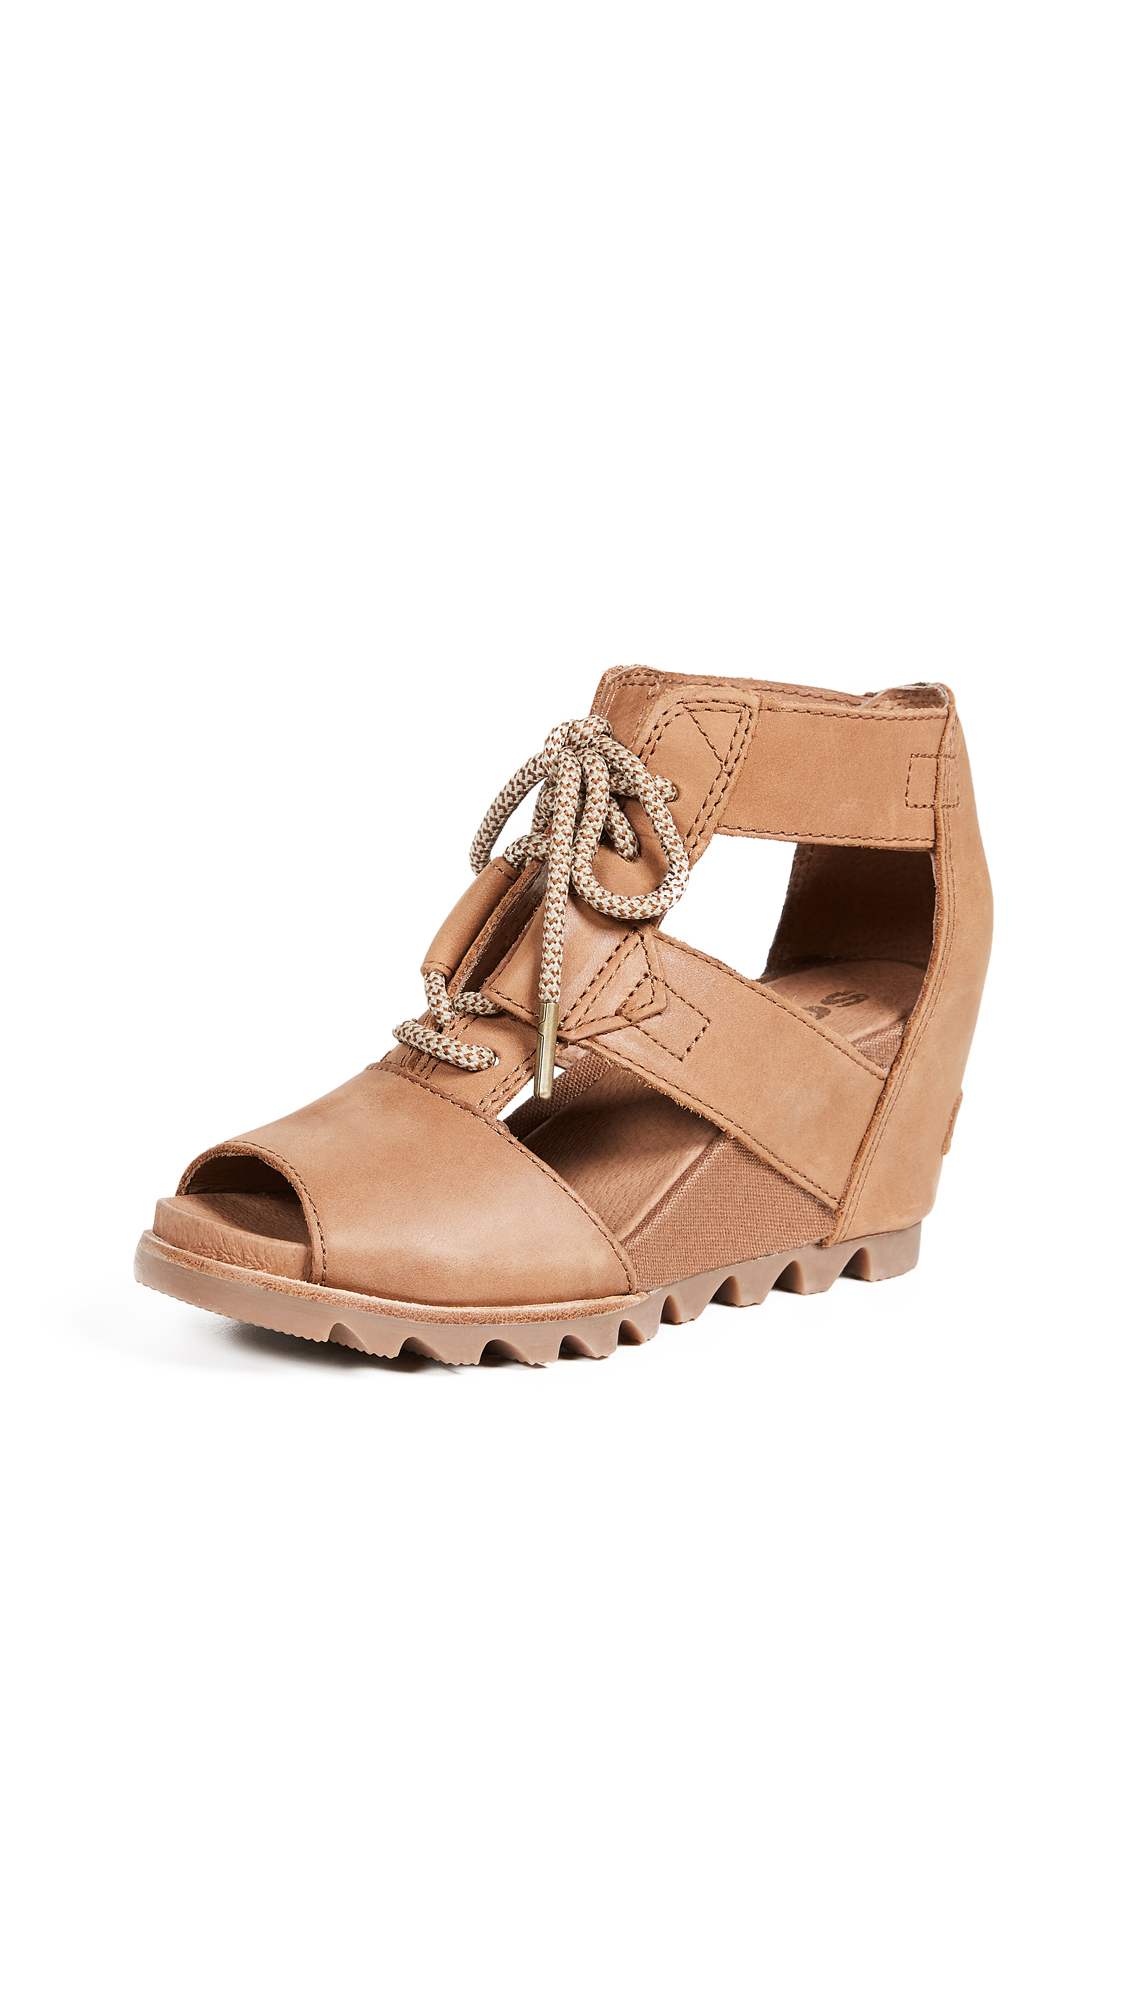 Sorel Joanie Lace Sandals - Camel Brown